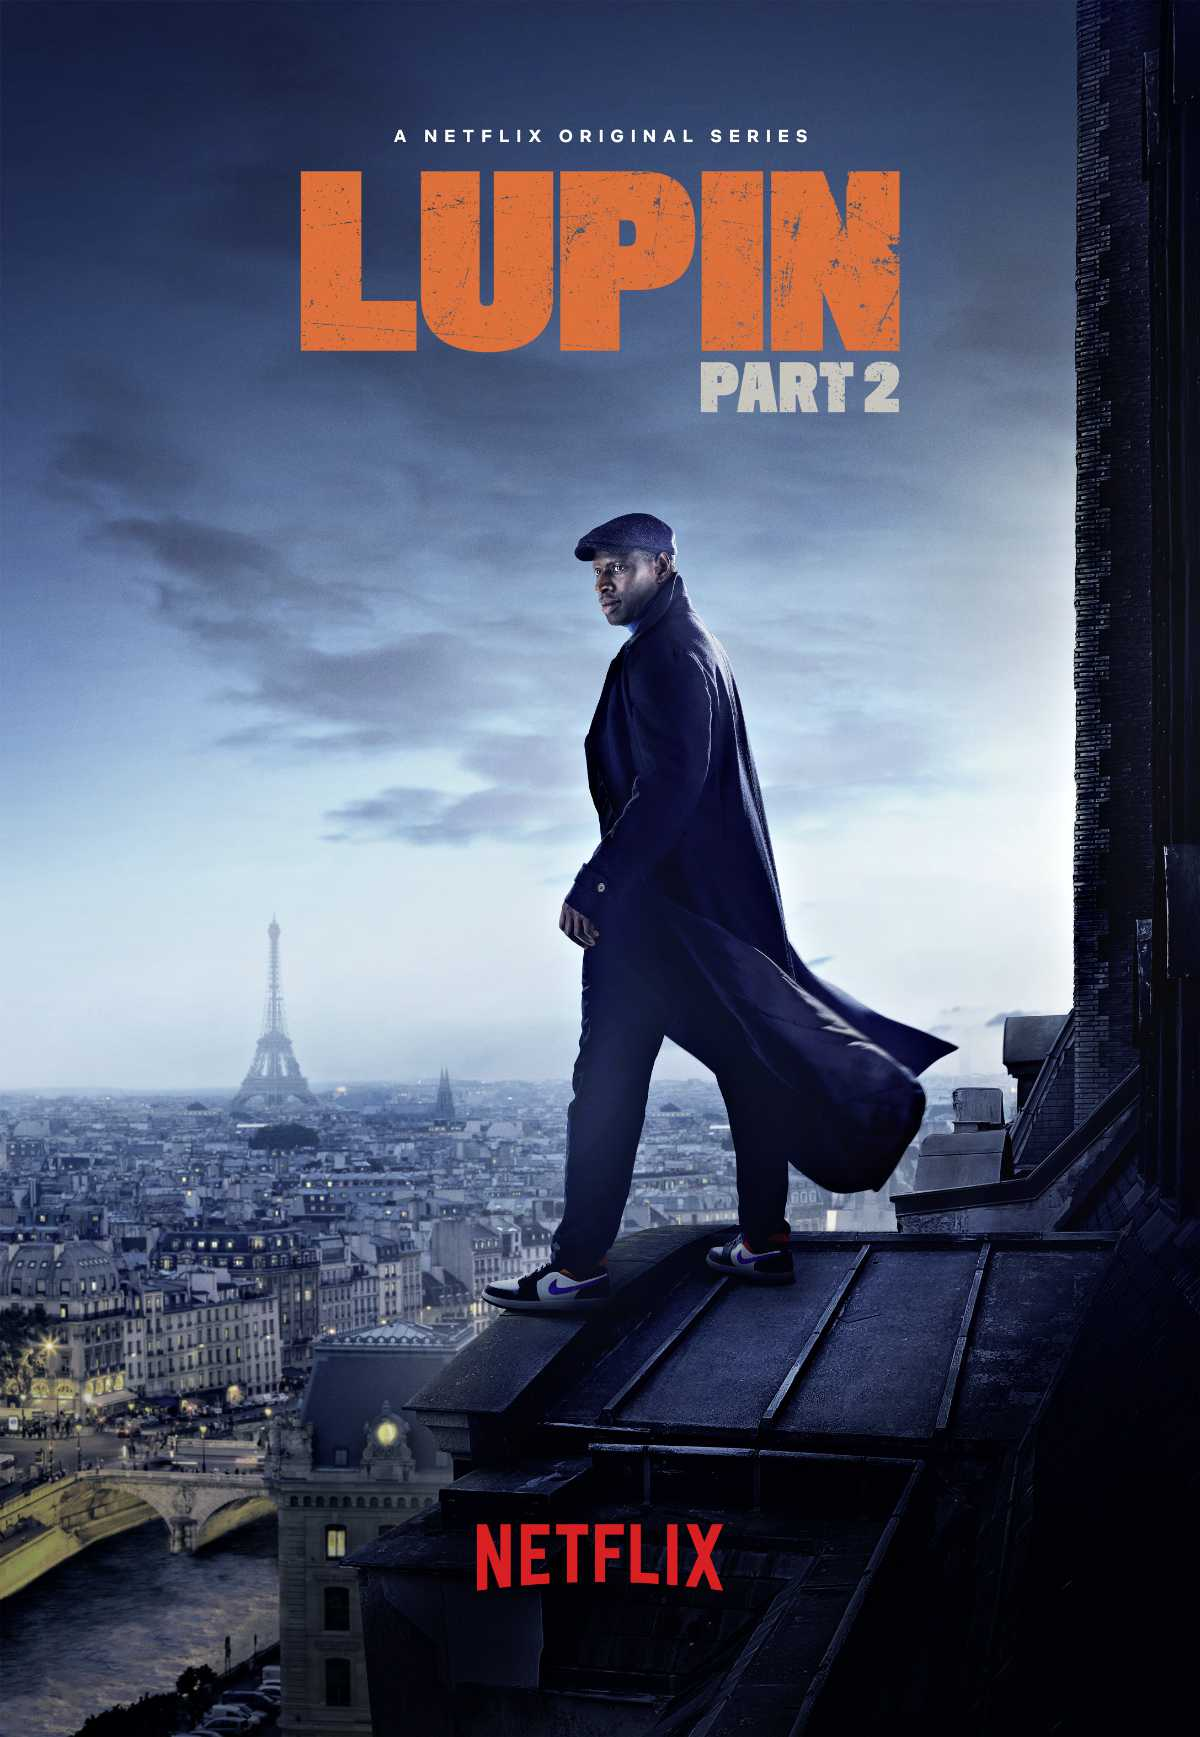 Check Out the New Trailer for the Netflix Series Lupin Part 2